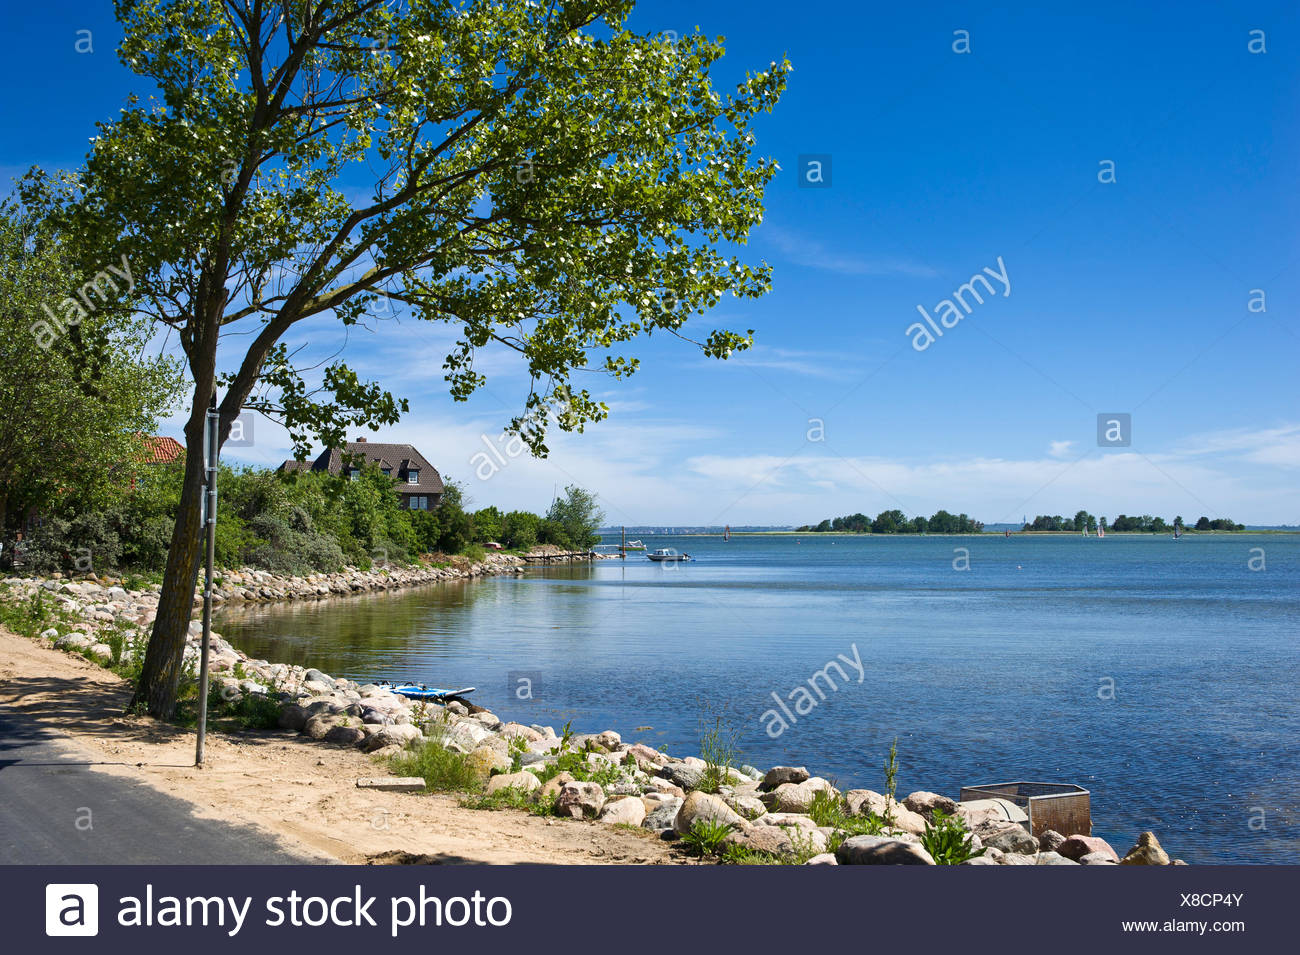 bay orther reede,lemkenhafen,insel fehmarn - Stock Image